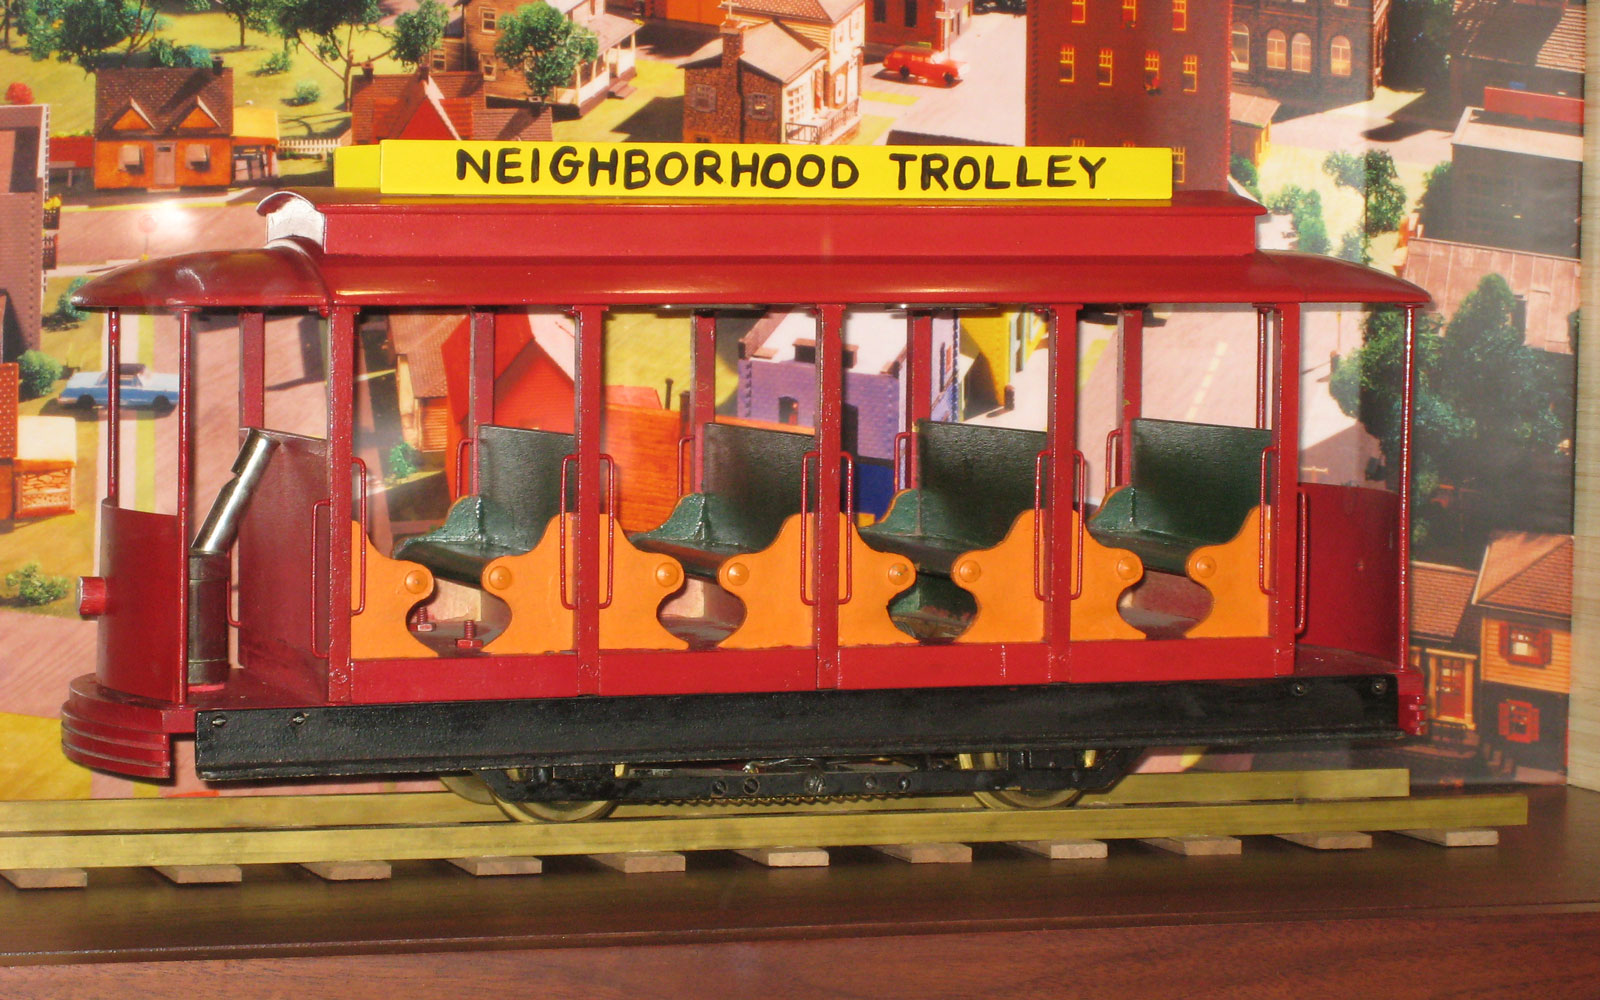 A trolley from